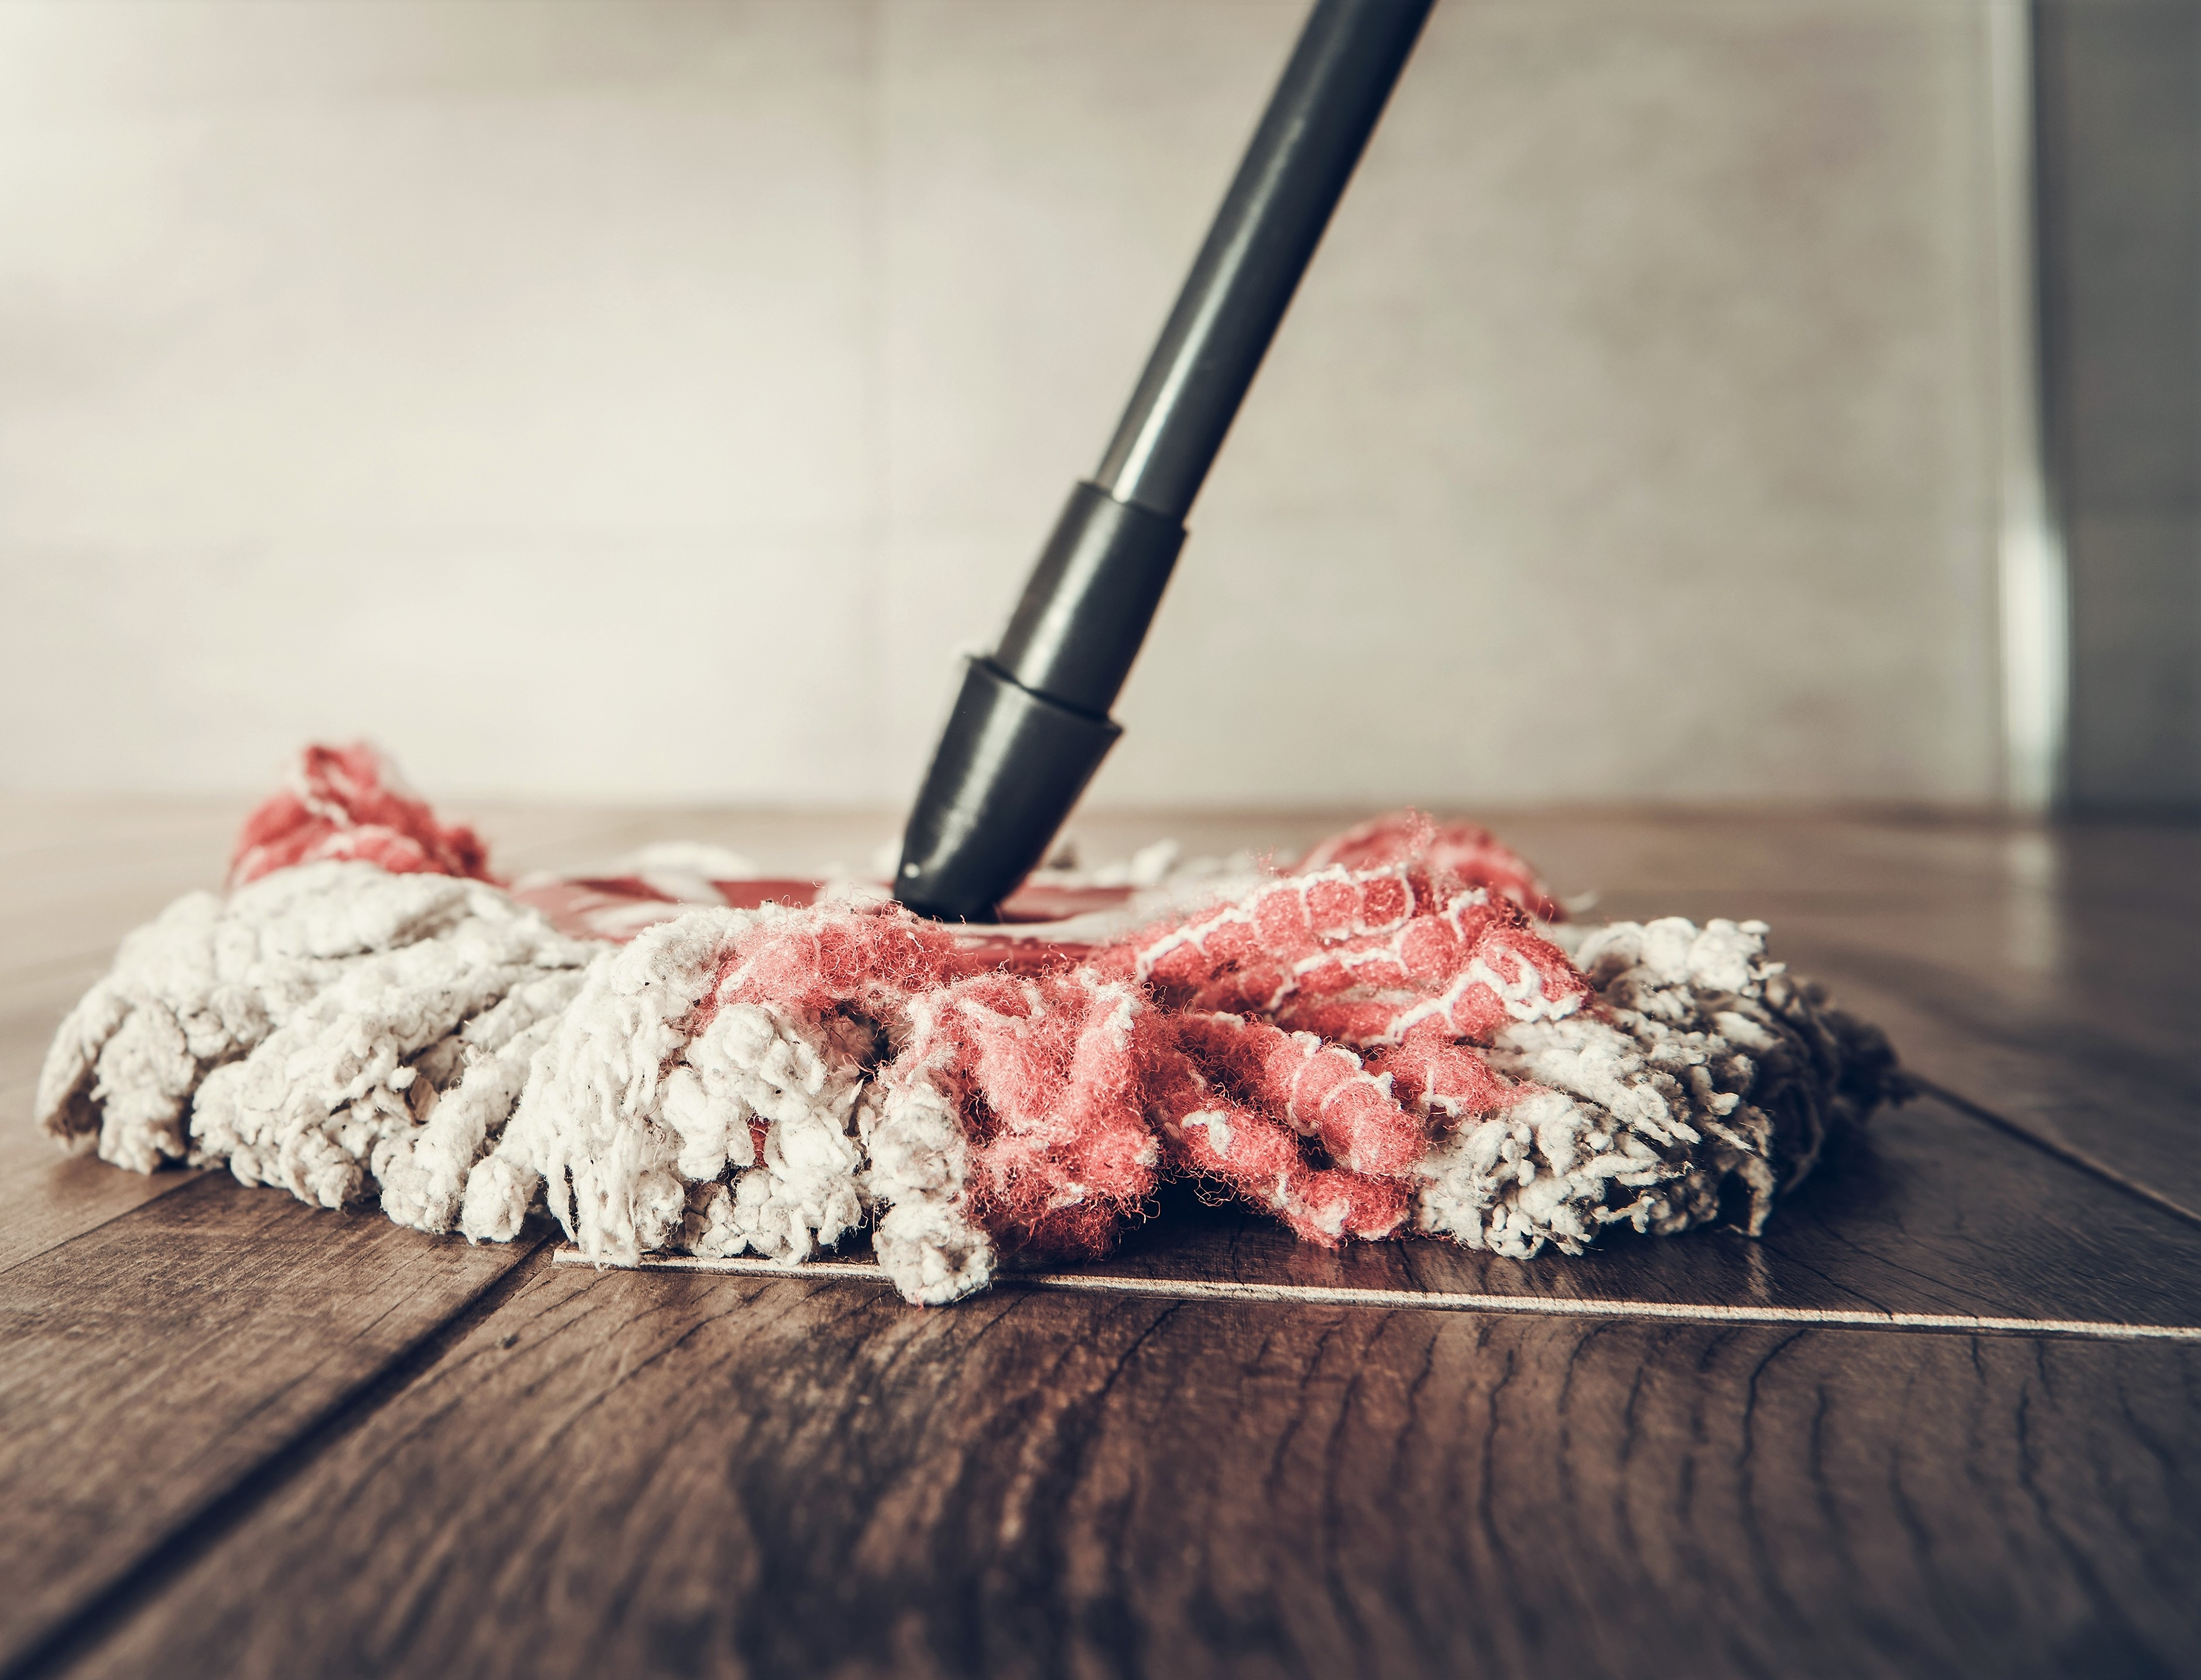 cleaning-wooden-flooring-image